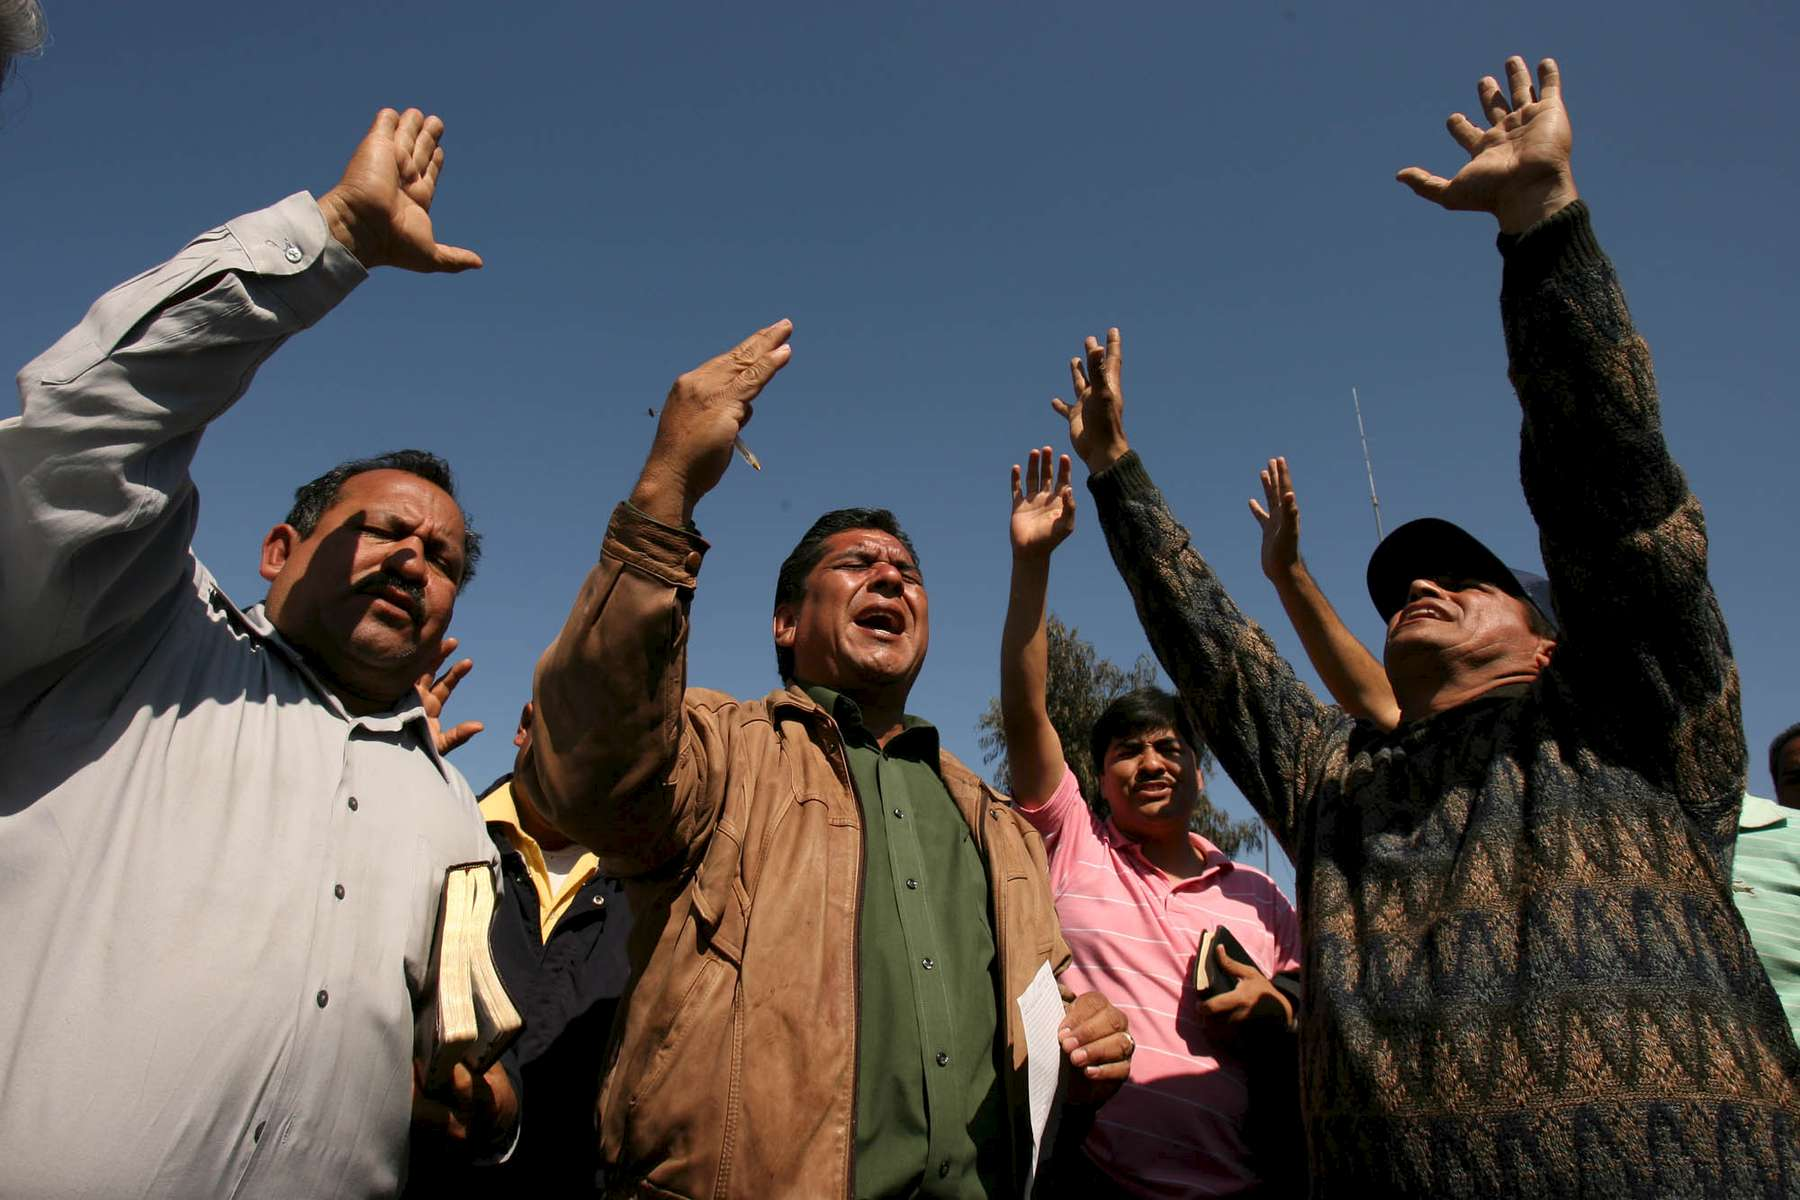 Pastors from area evangelical congregations prayed in front of the Pasta de Conchos coal mine in San Juan de Sabinas in the Mexican state of Coahuila Tuesday.  Family members waited outside the Pasta de Conchos coal mine Tuesday. In the Early morning on Sunday 65 miners were trapped 163 meters below ground after an explosion.Sharón Steinmann / Houston Chronicle